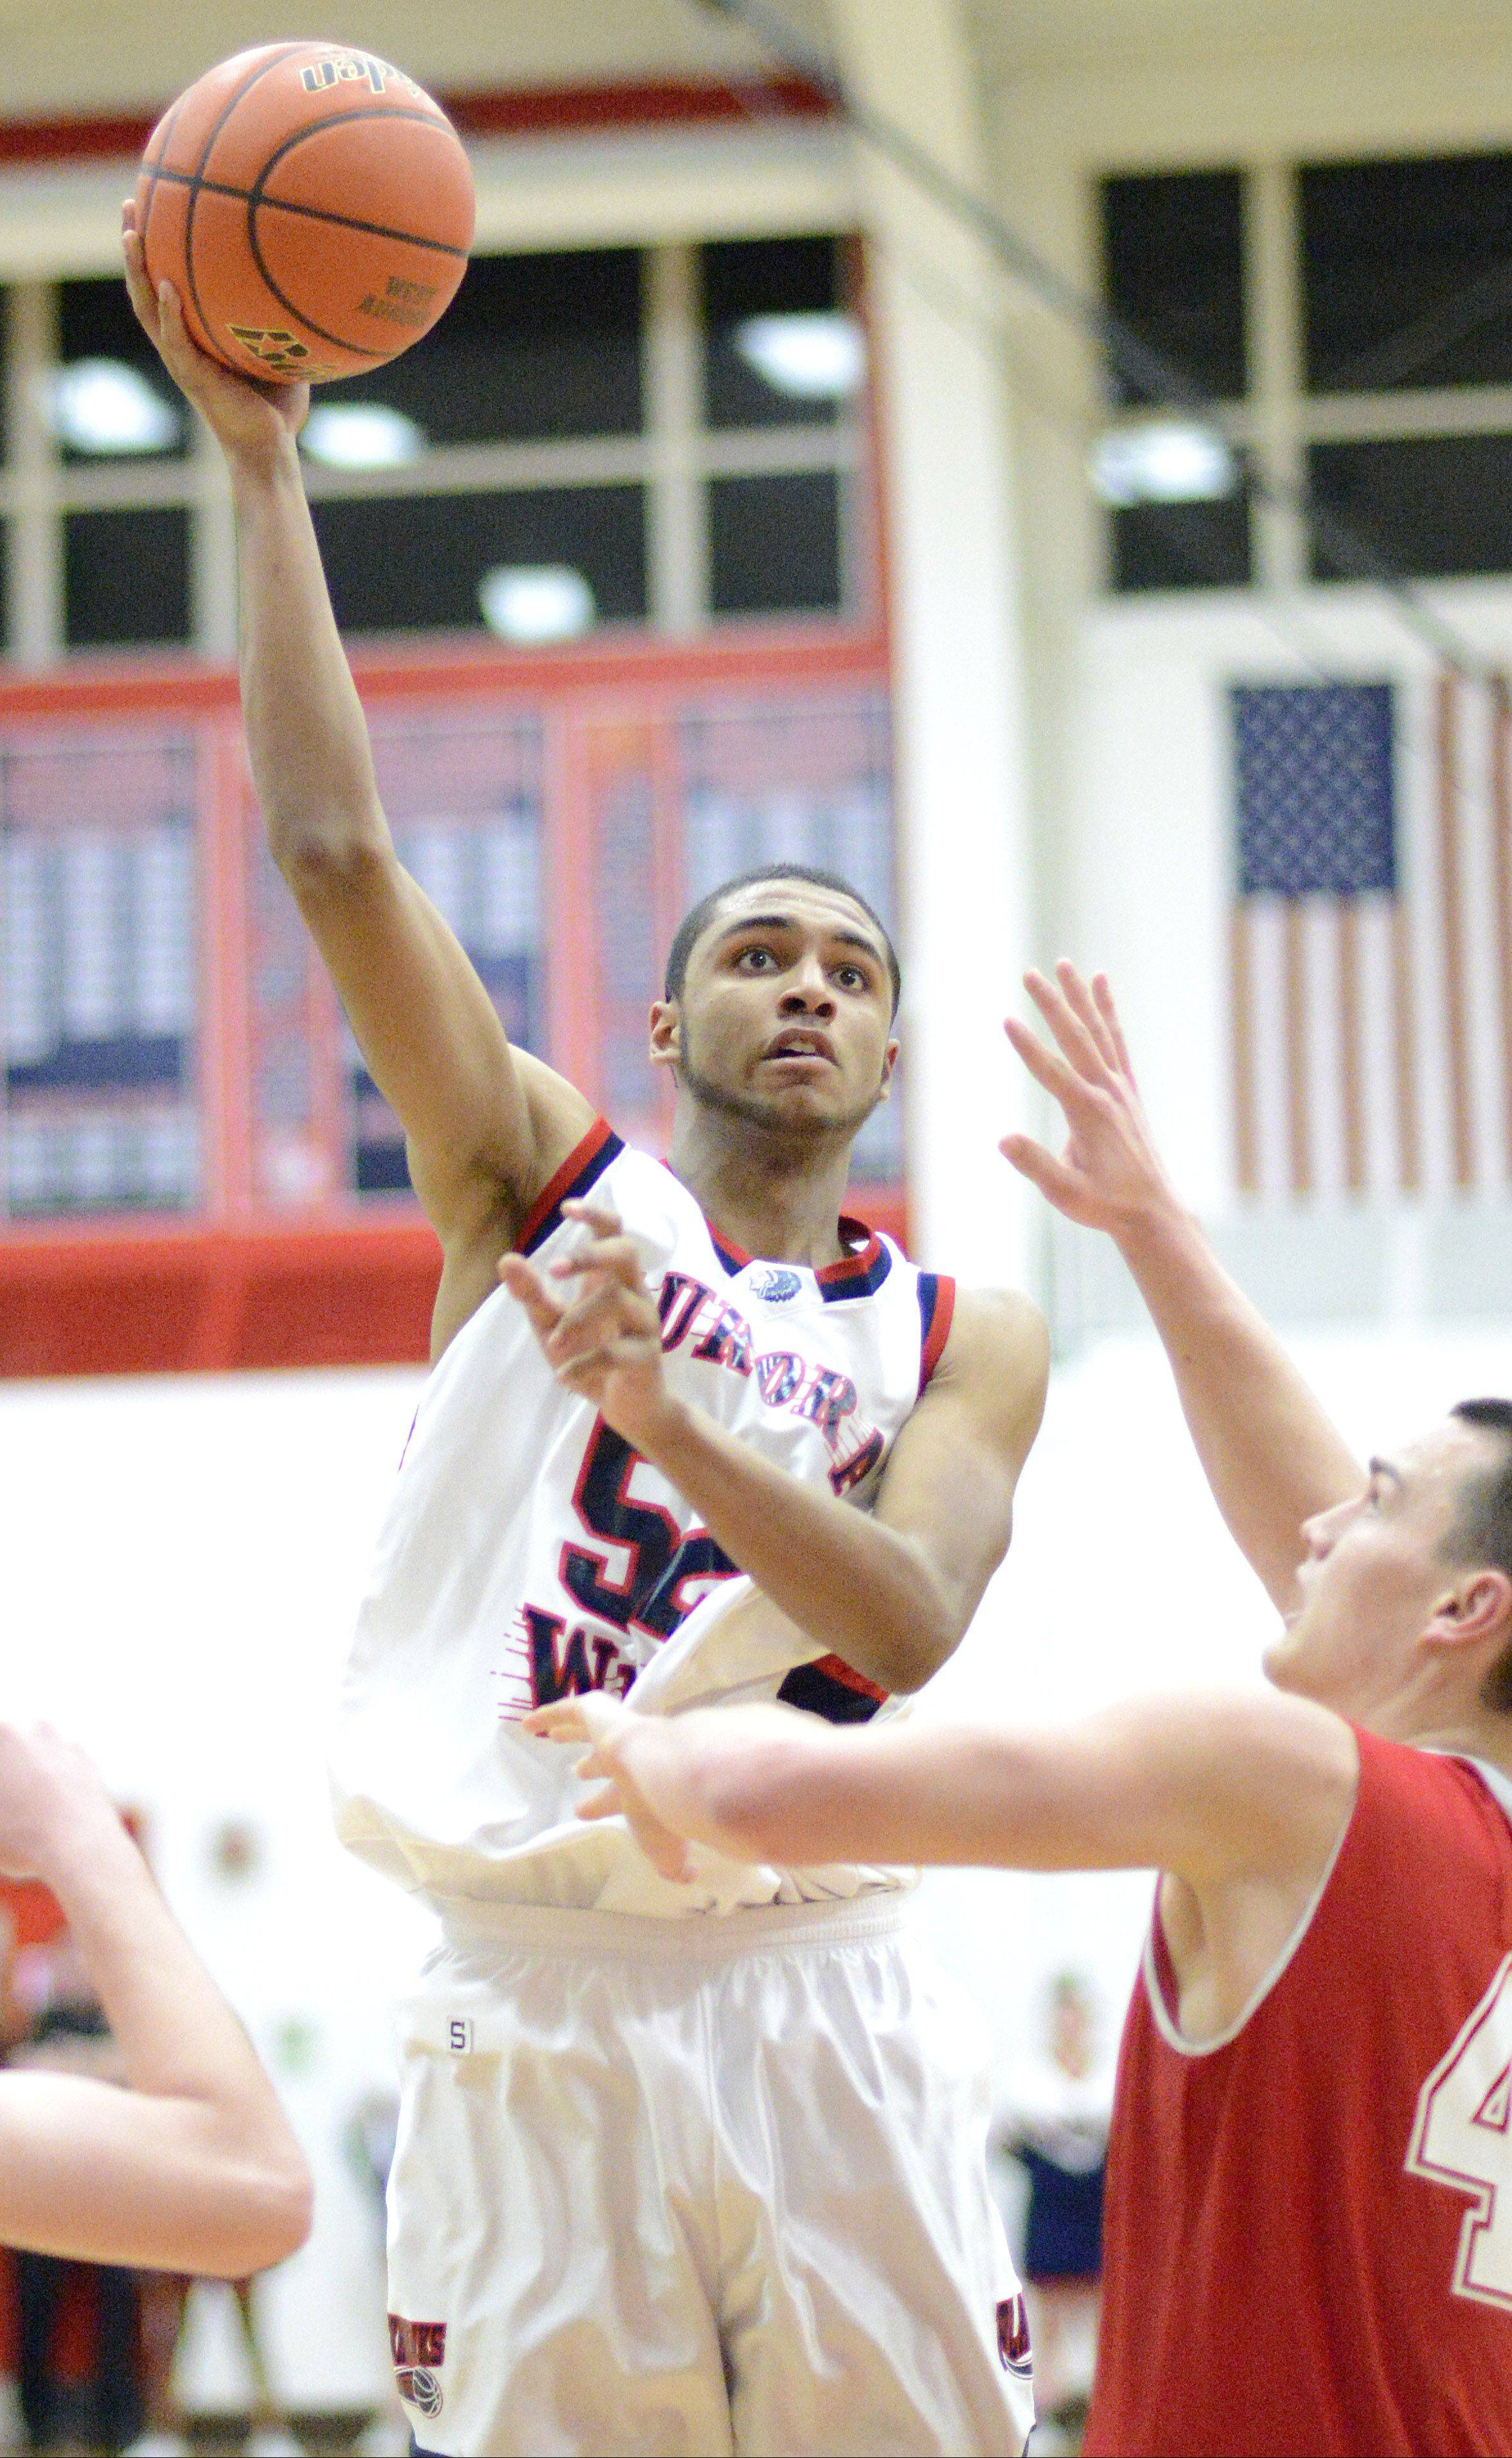 While West Aurora senior Josh McAuley was a thorn in the side to anyone who dared drive the lane with 94 blocked shots, his improvement on the offensive end keyed the Blackkhawks' big year.